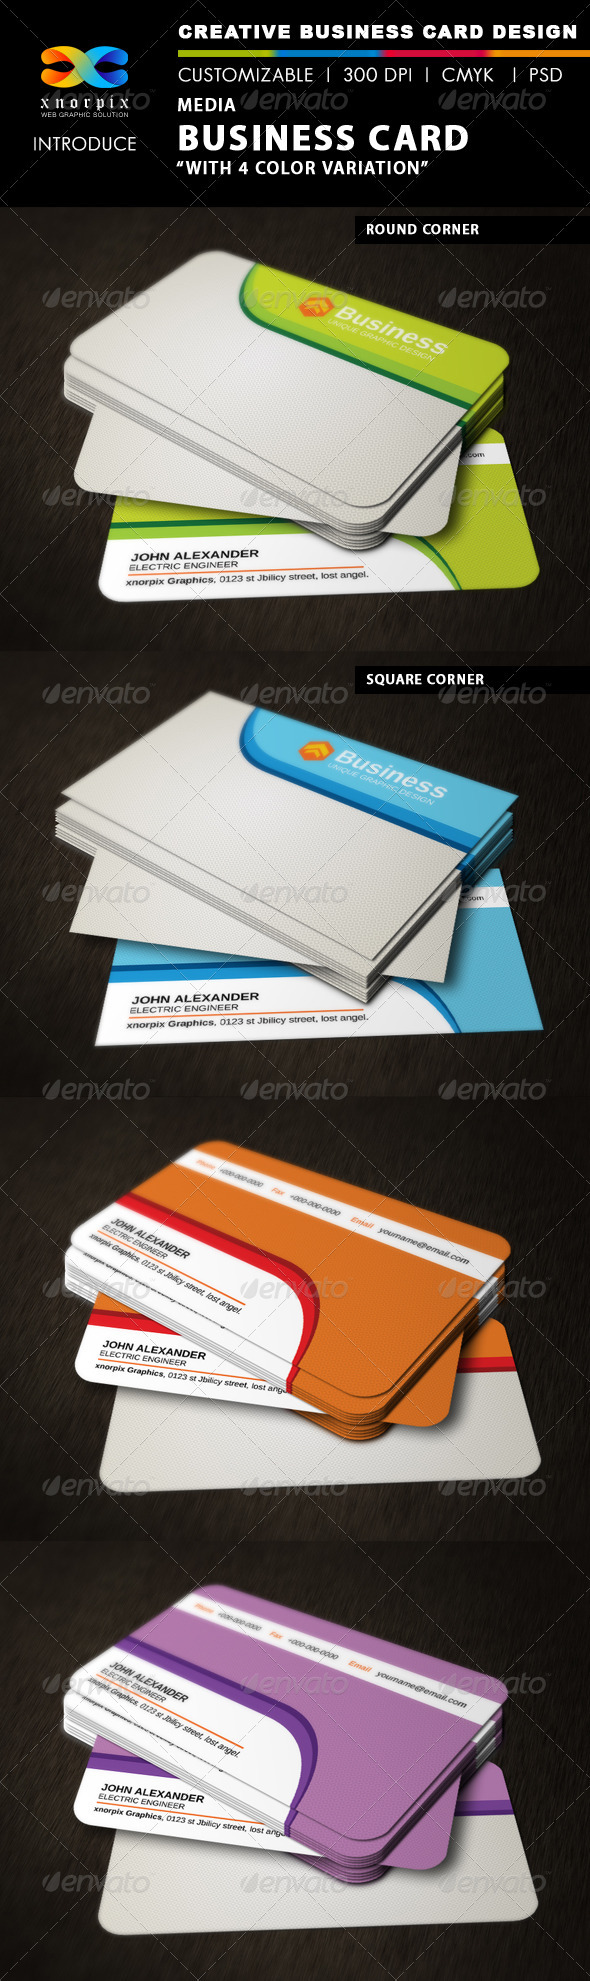 Media Business Card - Corporate Business Cards